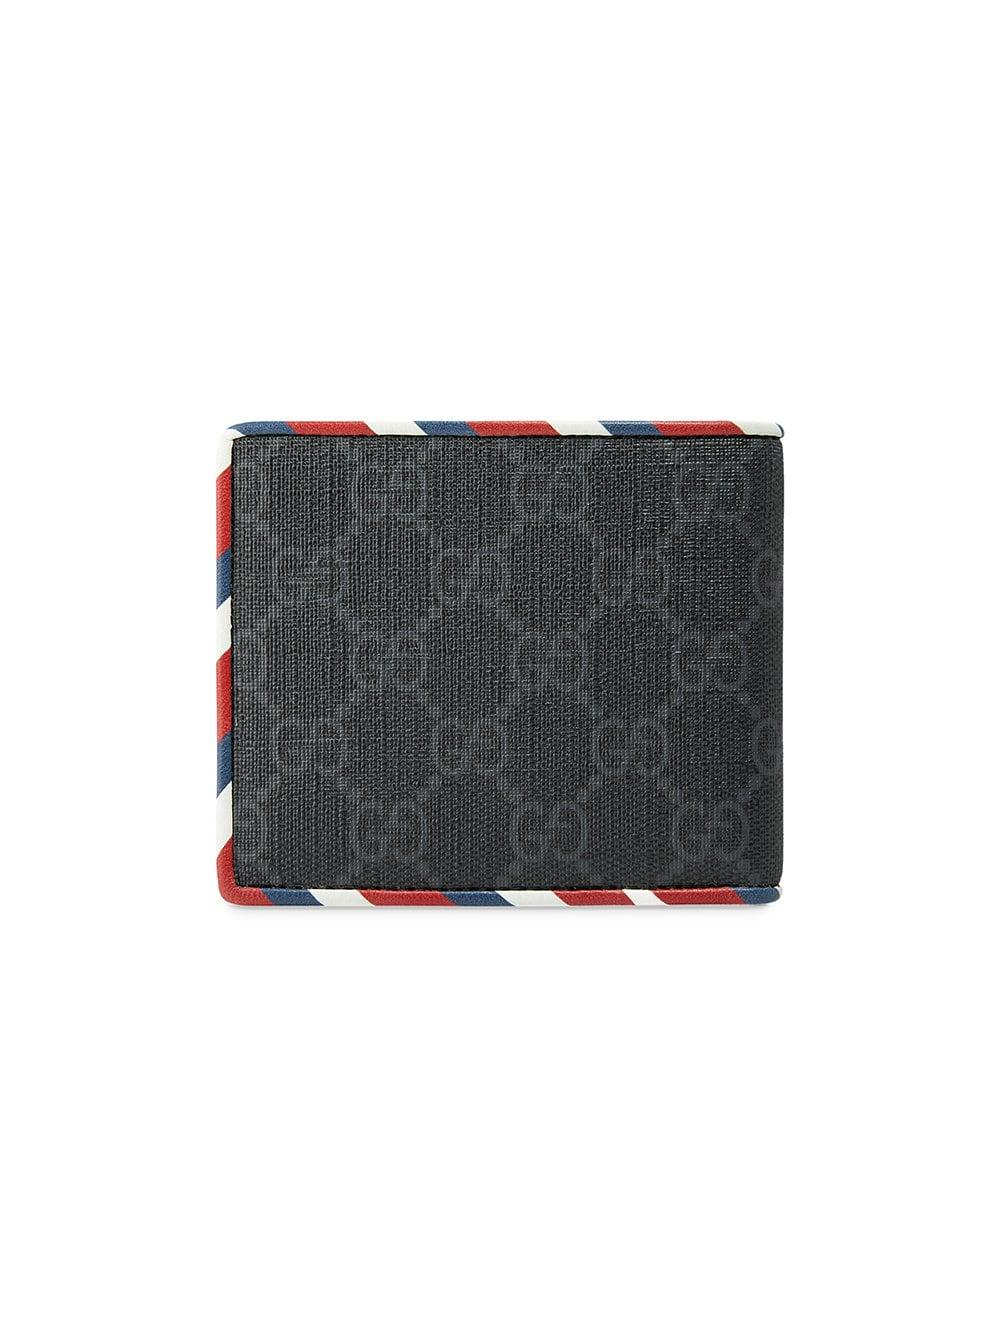 cb32643112ef Lyst - Gucci Night Courrier GG Supreme Wallet in Black for Men - Save 15%